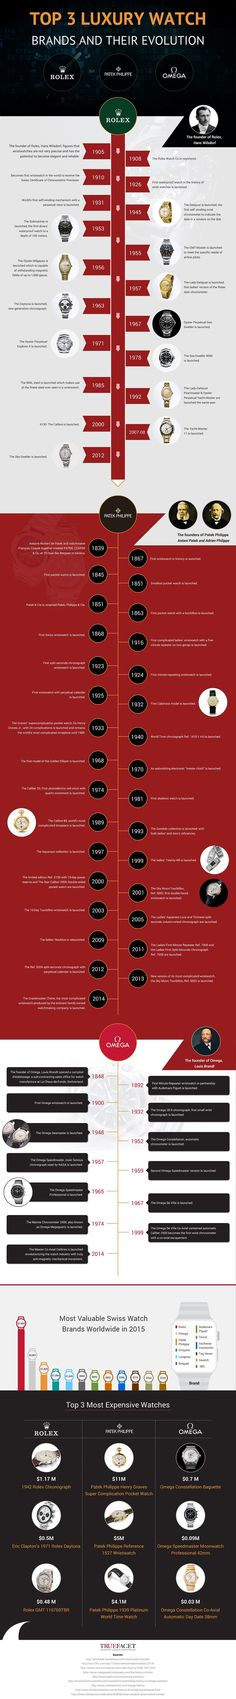 History of Top 3 #Luxury #Watches: http://www.cefashion.net/infographic-of-top-3-luxury-watch-brands-their-evolution #infographics #rolex #omega #patekphilippe